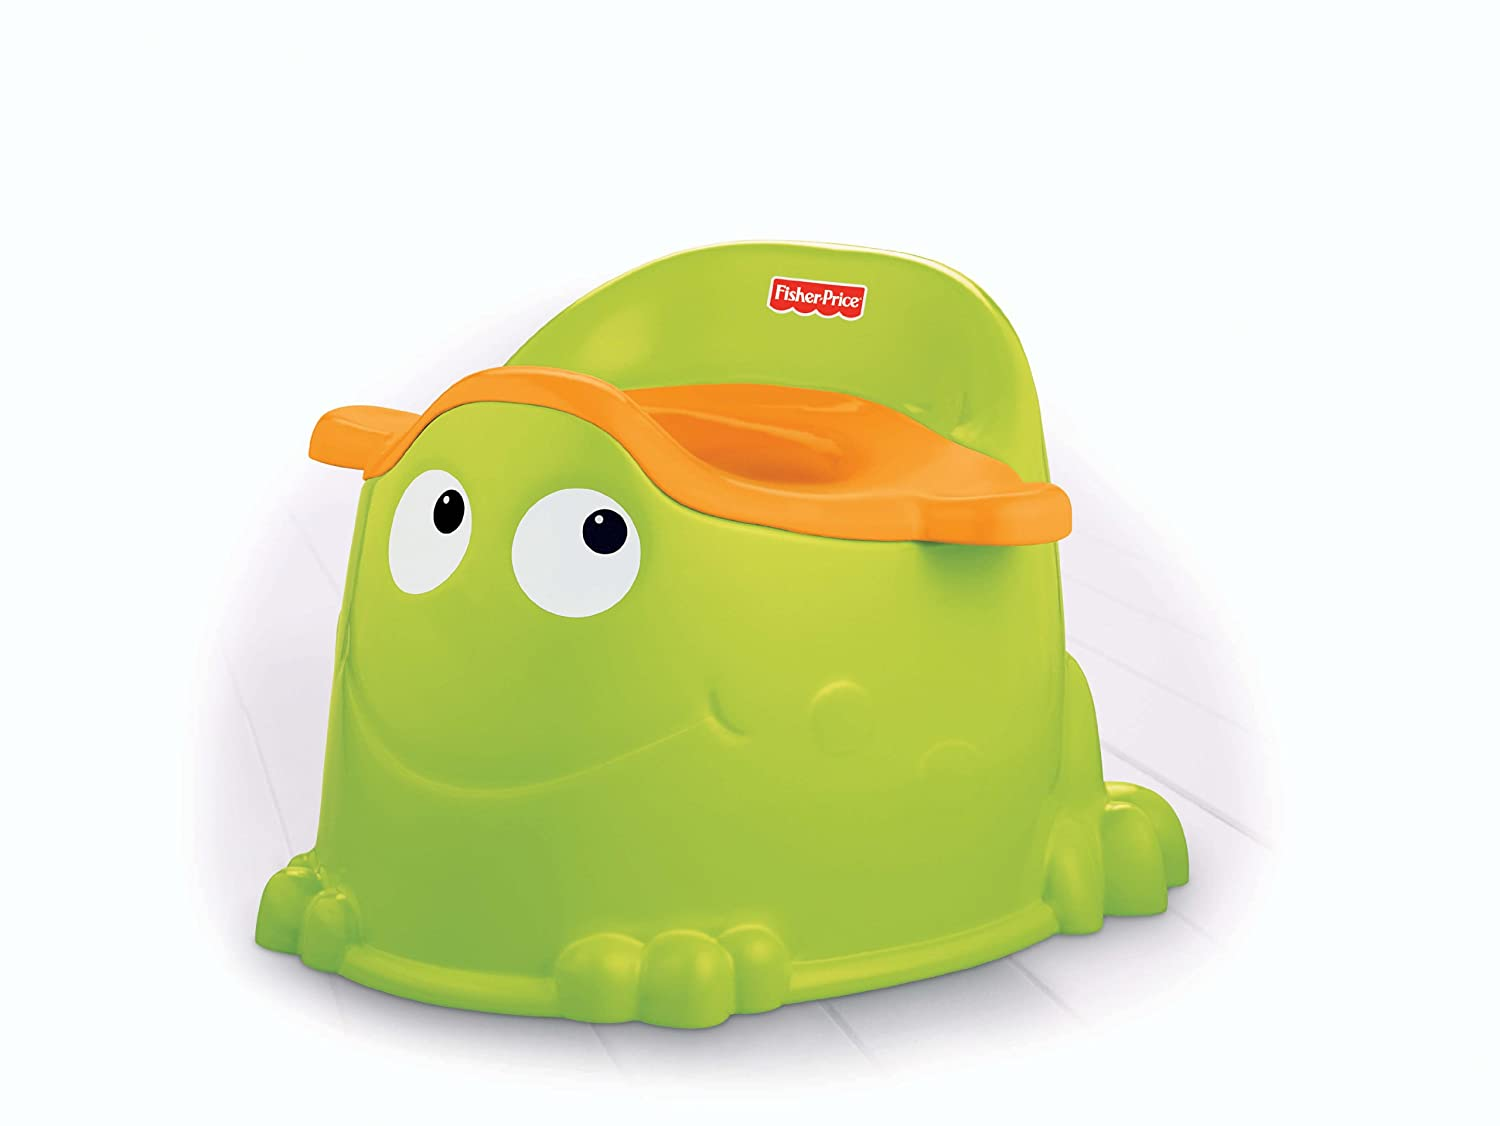 frog potty chair on meaning utah deal diva helping families live less amazon